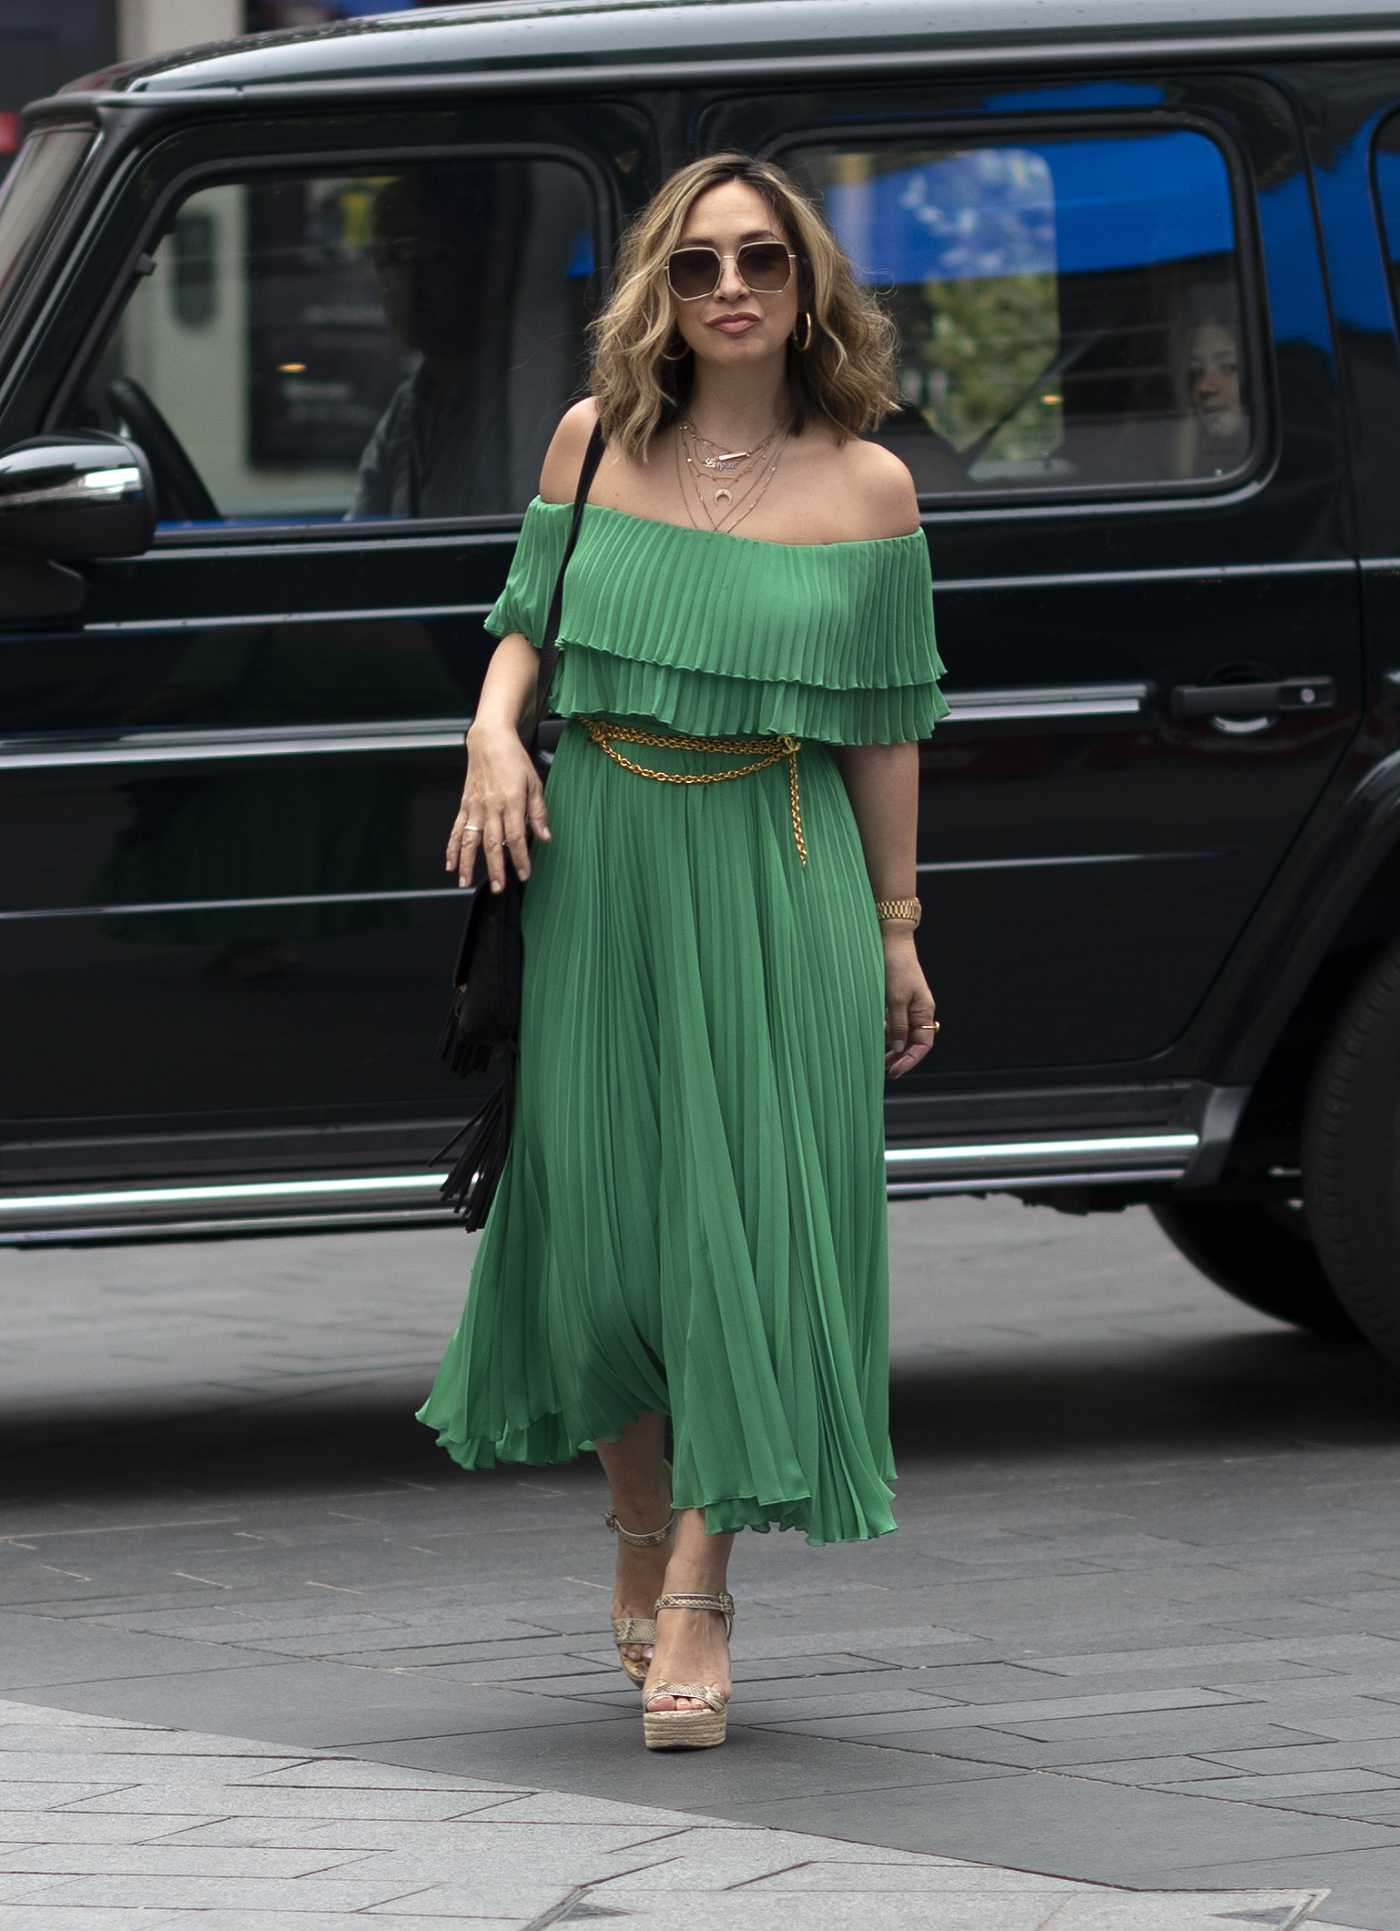 Myleene Klass in a Green Strapless Dress Arrives at the Smooth Radio in London 08/14/2020